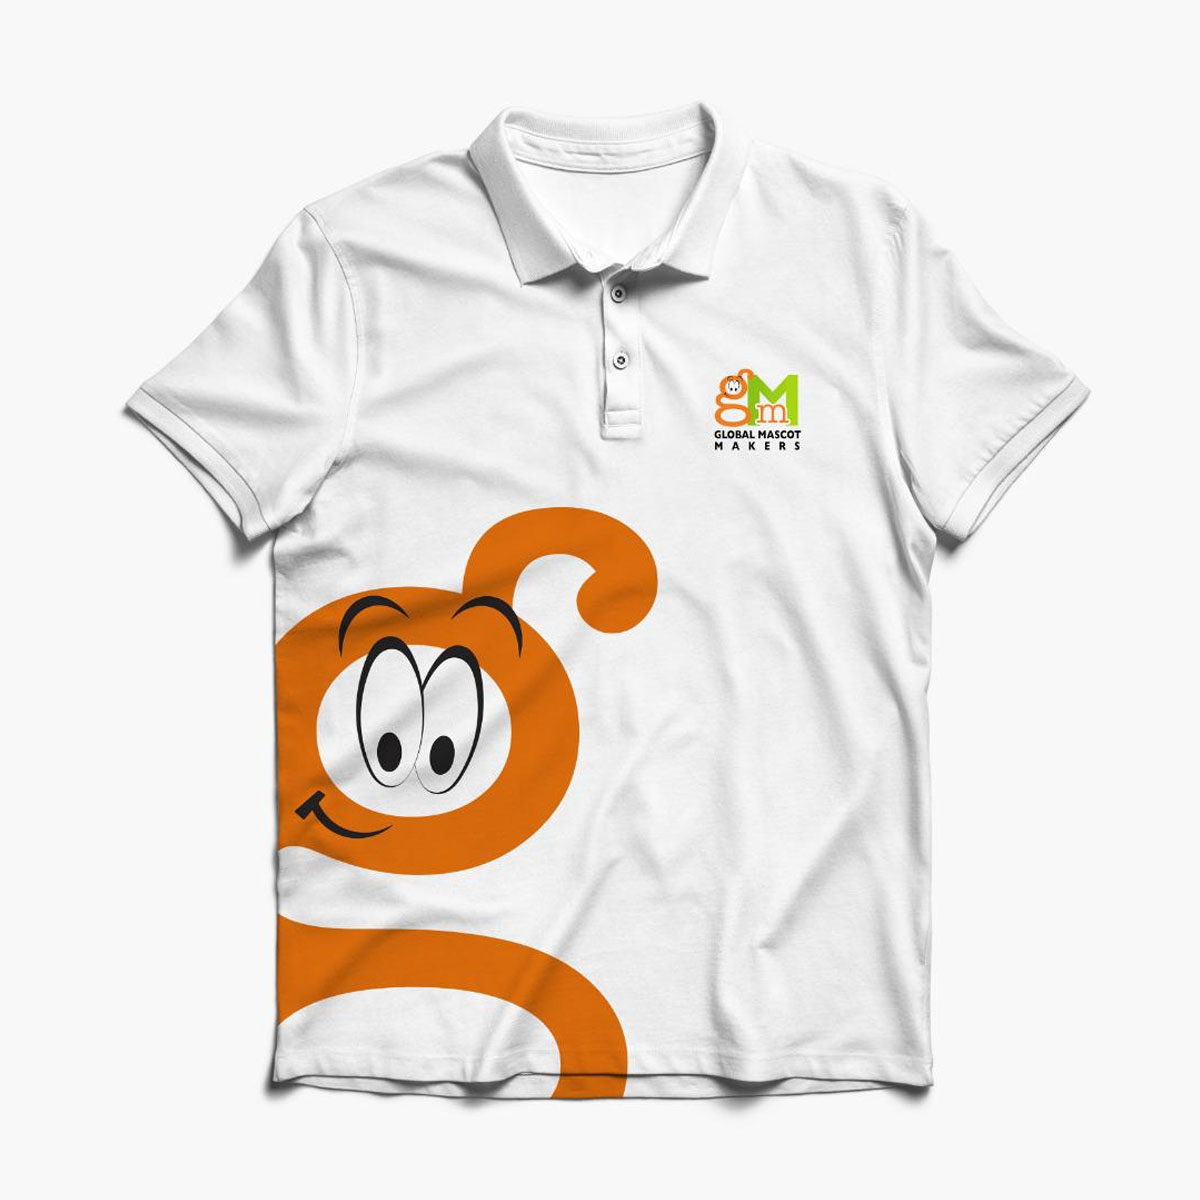 mascot makers in PUNE, mascot makers in CHINA, mascot makers in THAILAND, mascot costume manufacturer in INDIA, mascot costume manufacturer in DELHI, mascot costumes manufacturer in GURGAON